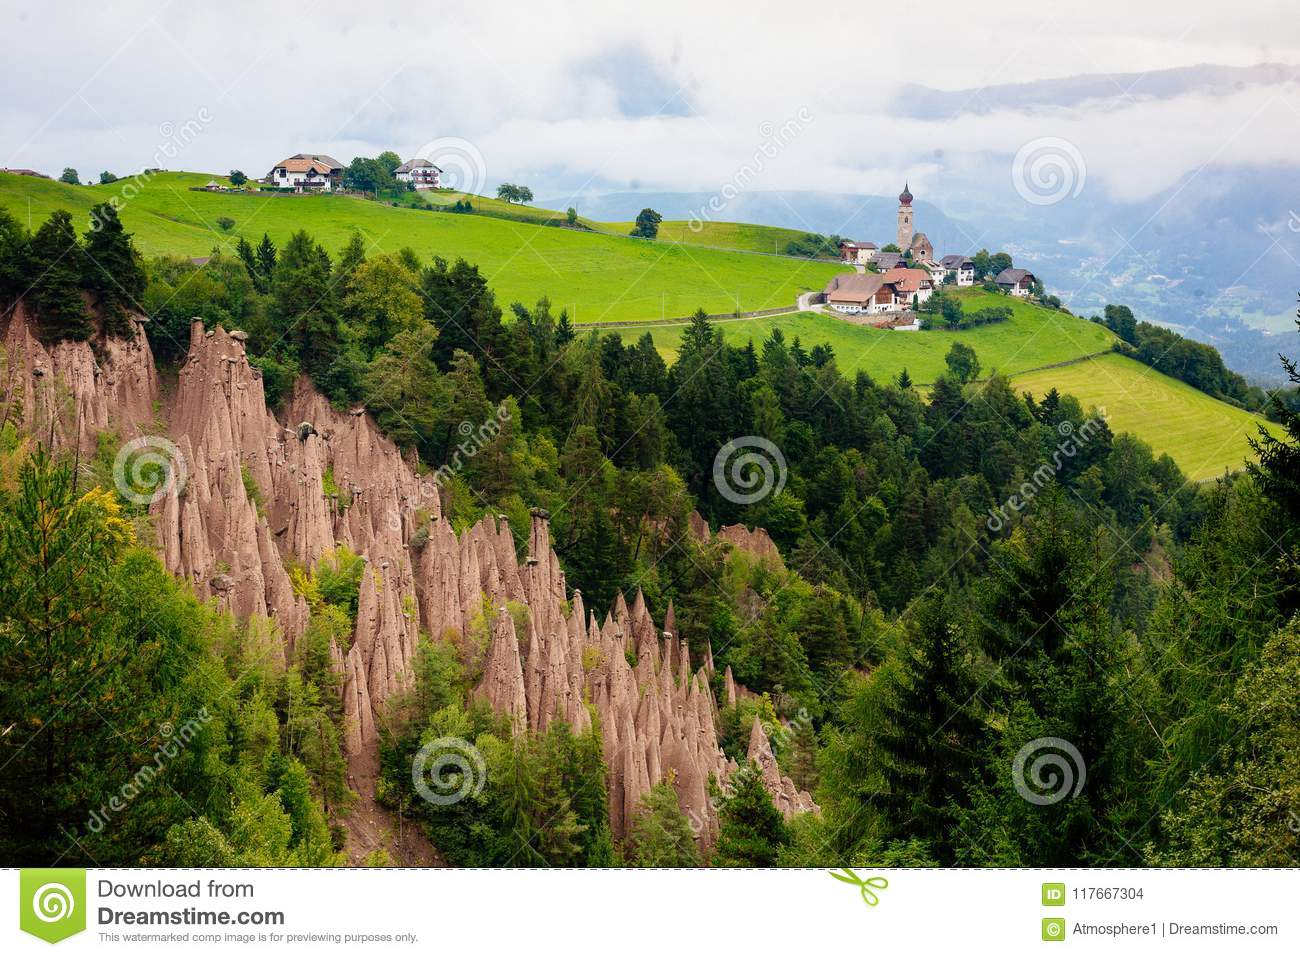 Natural Earth Pyramids In Renon, Ritten, South Tyrol, Italy